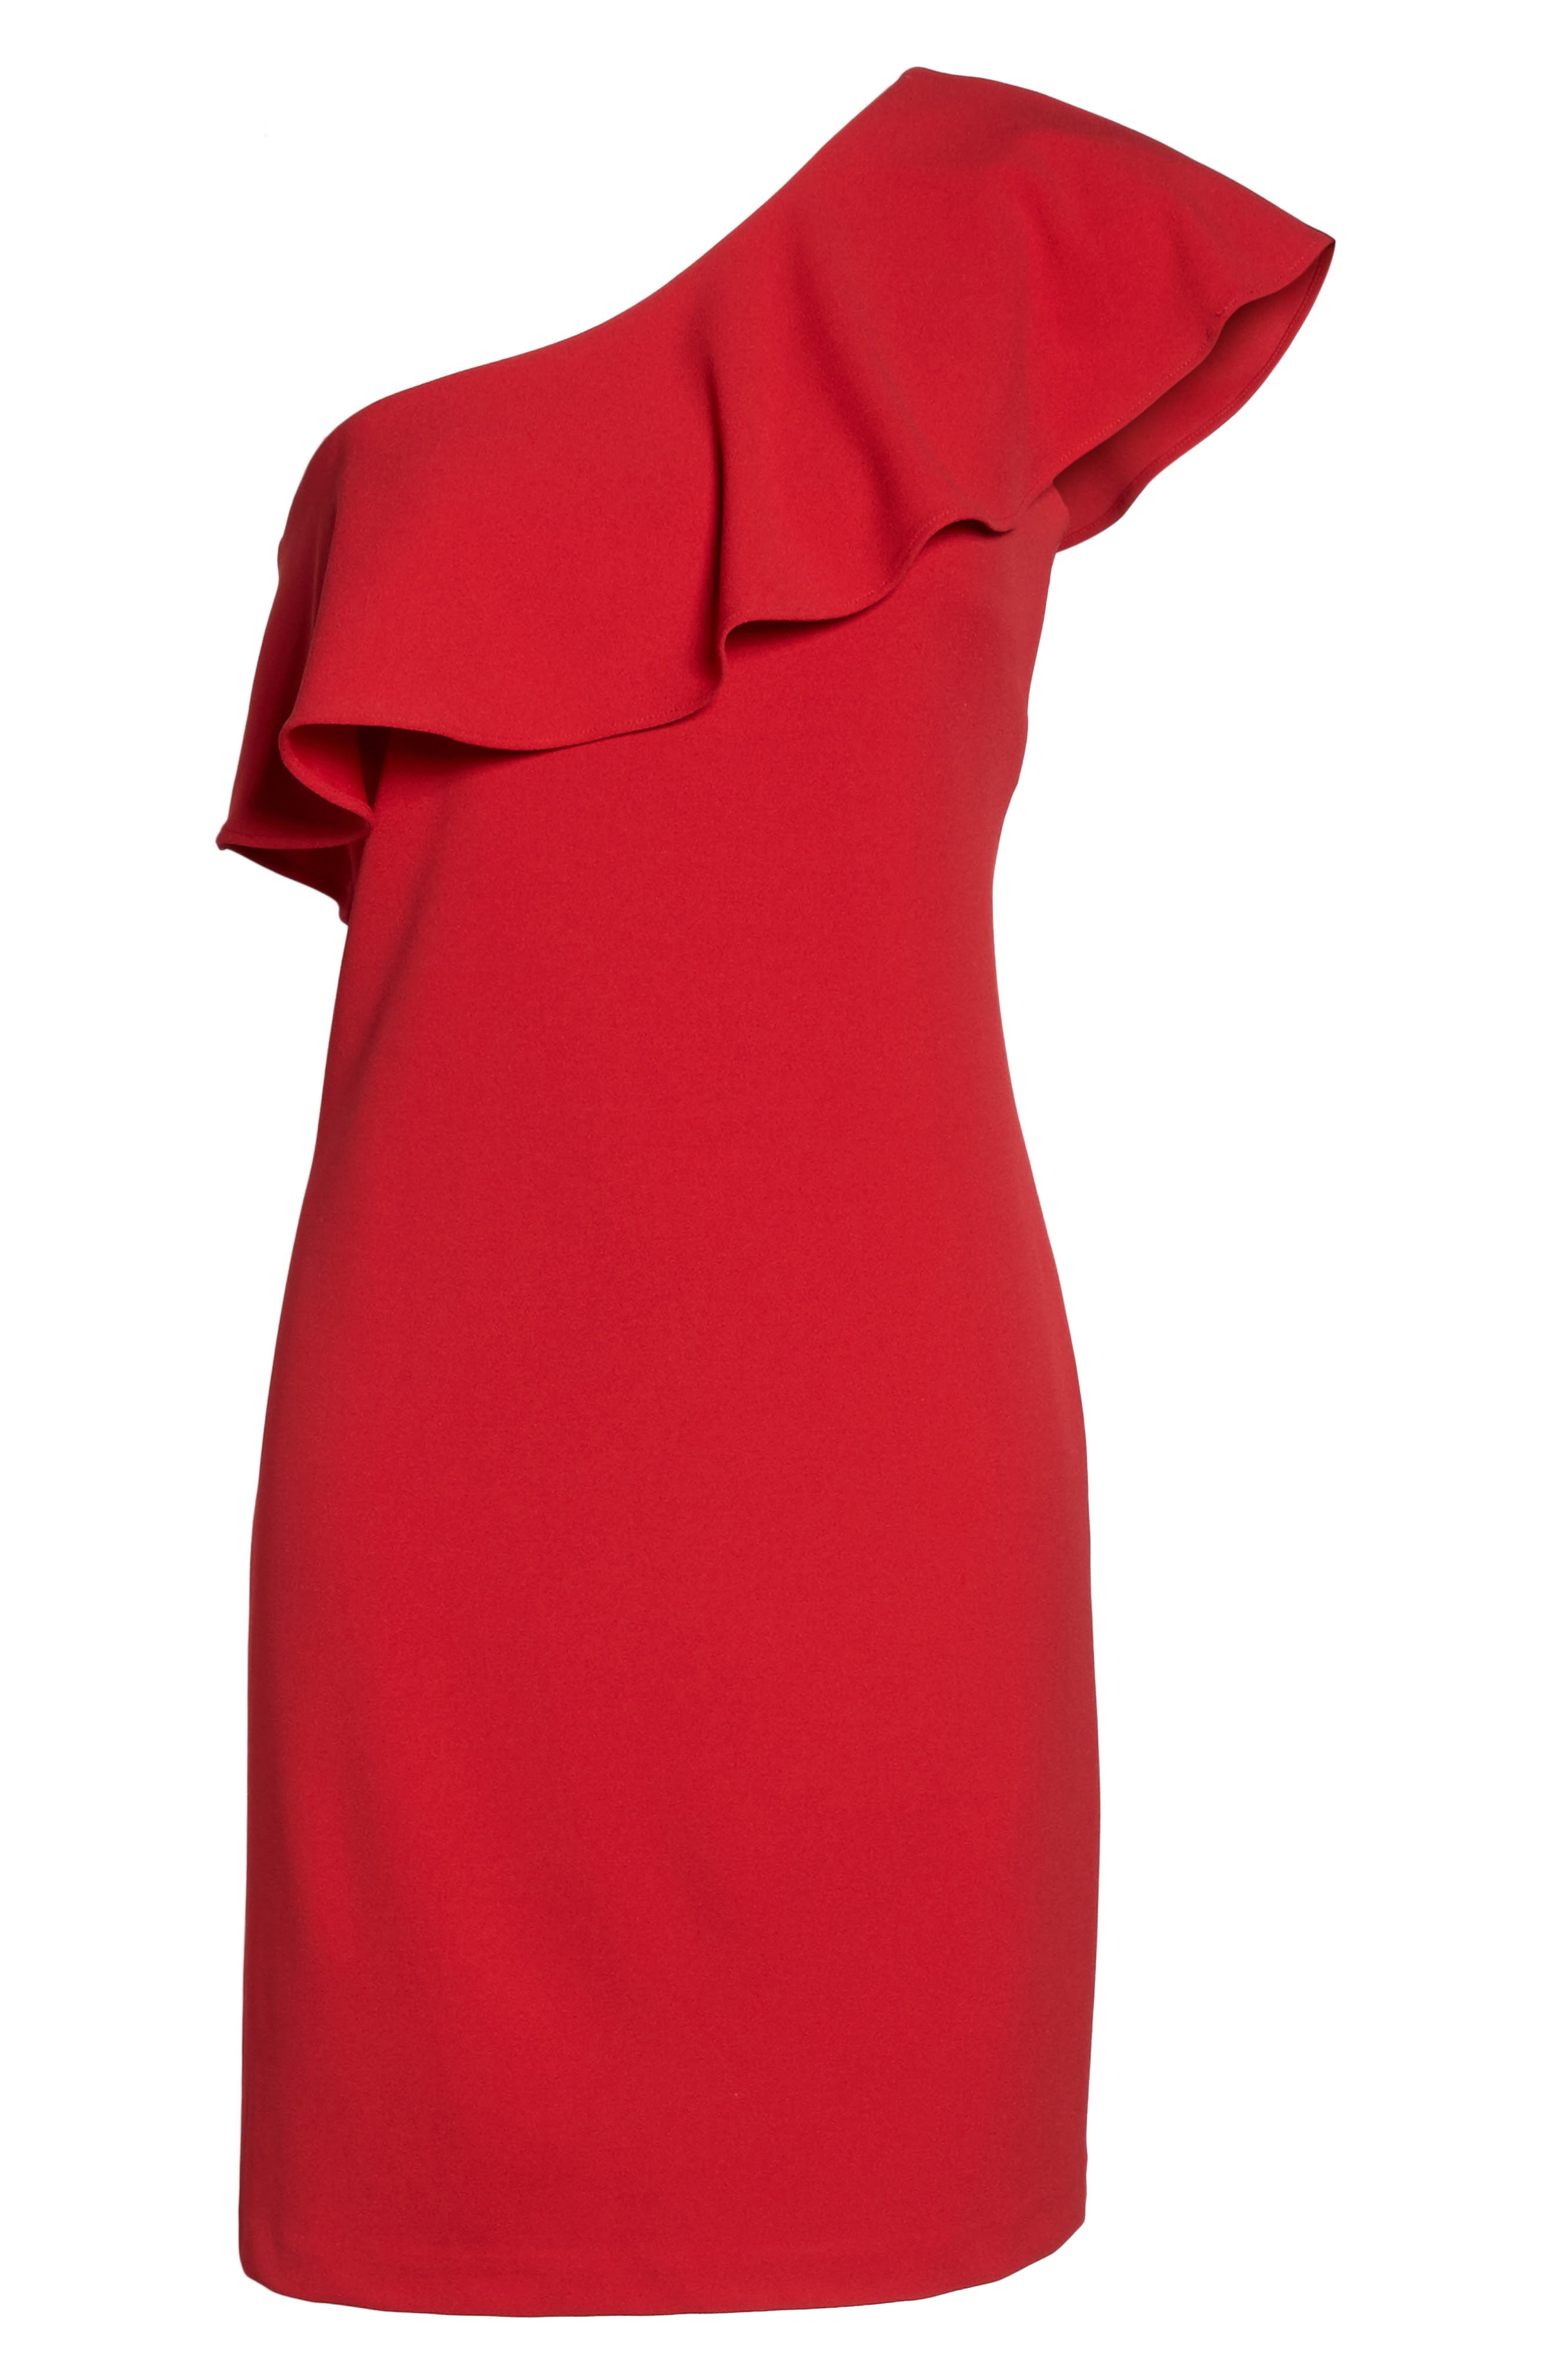 Ruffle One-Shoulder Shift Dress,                             Alternate thumbnail 6, color,                             Red